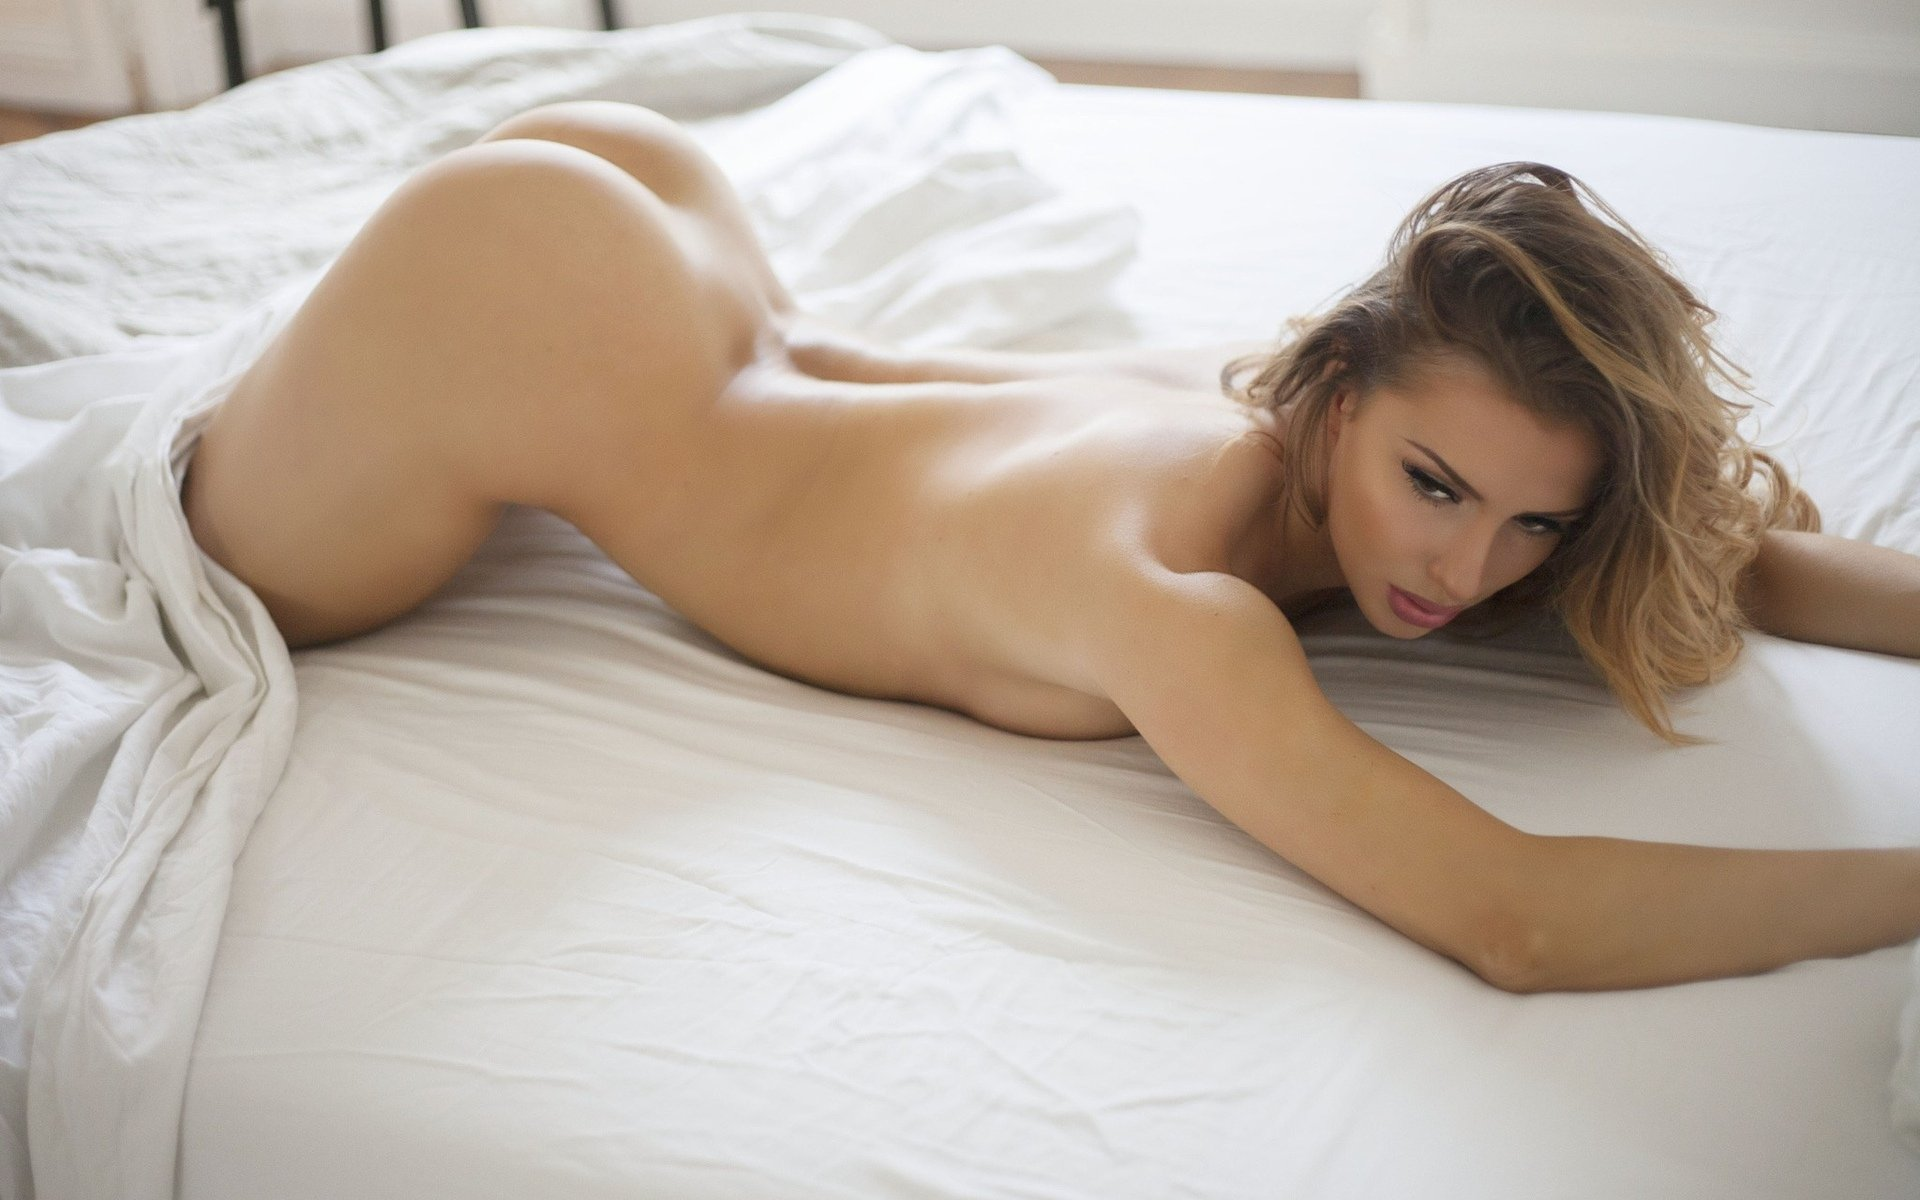 Most beautiful india girl xxx nude on cam